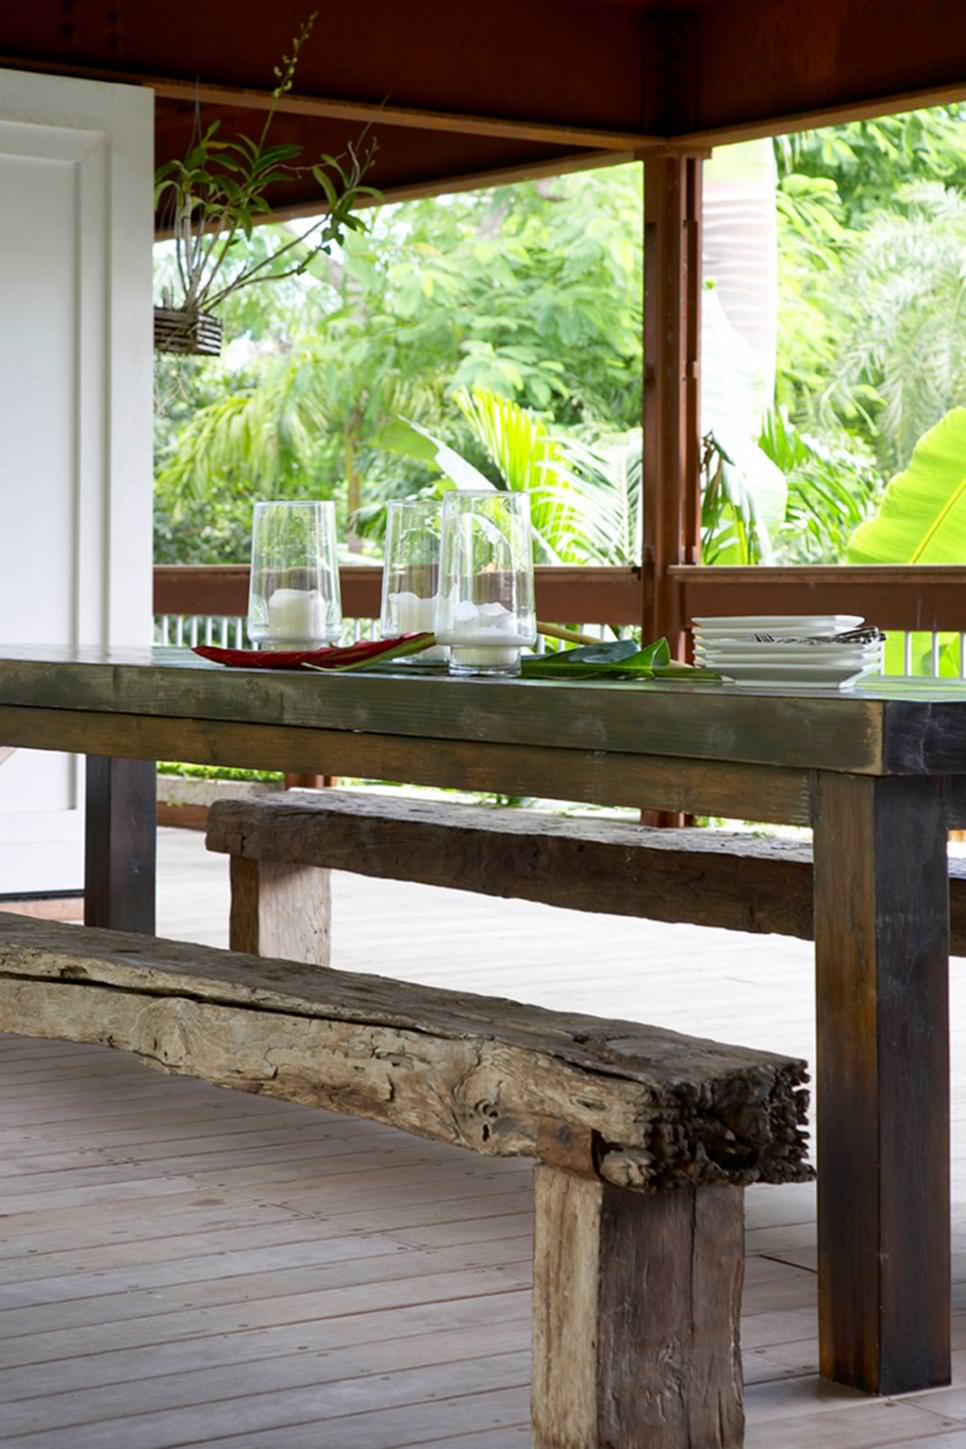 Rustic Wood Dining Table and Bench on Porch